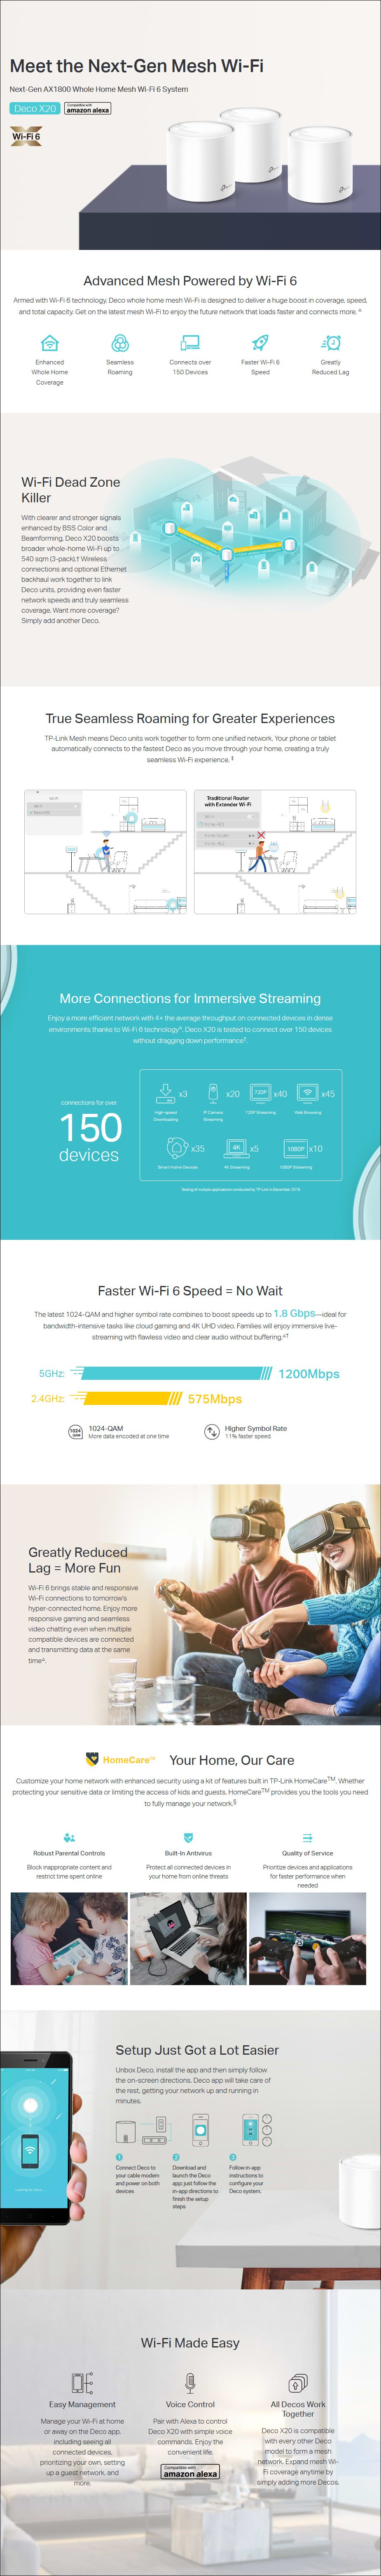 TP-Link Deco X20 AX1800 Whole Home Mesh Wi-Fi System - 3-Pack - Deco X20(3-pack) | AusPCMarket